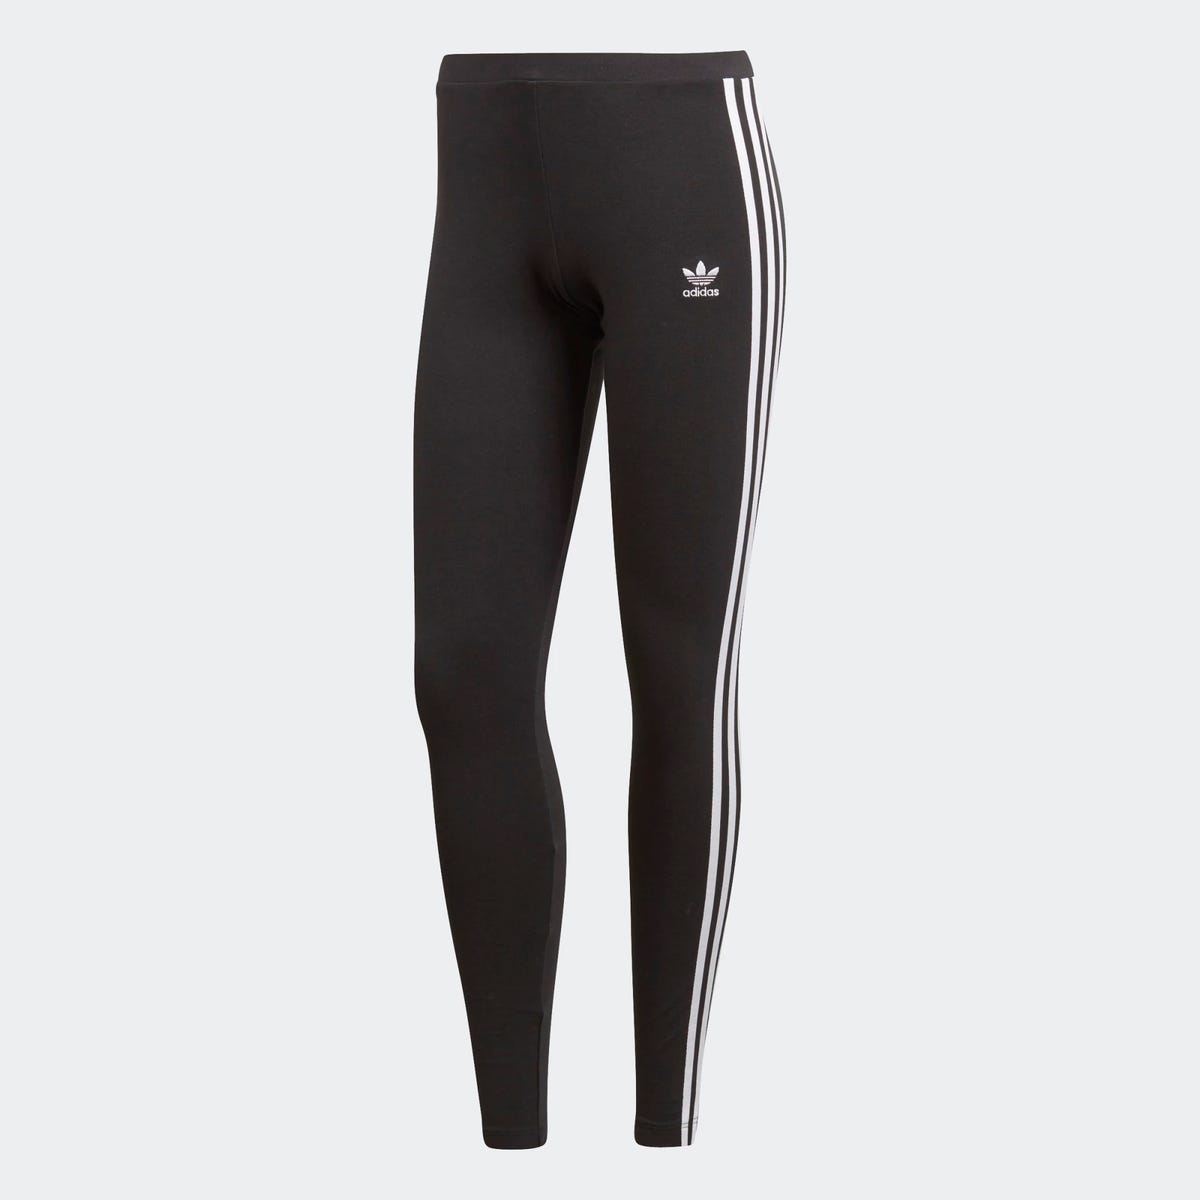 55d9cbaf58228 Best Black Leggings - Reviews On Top Brands & Styles